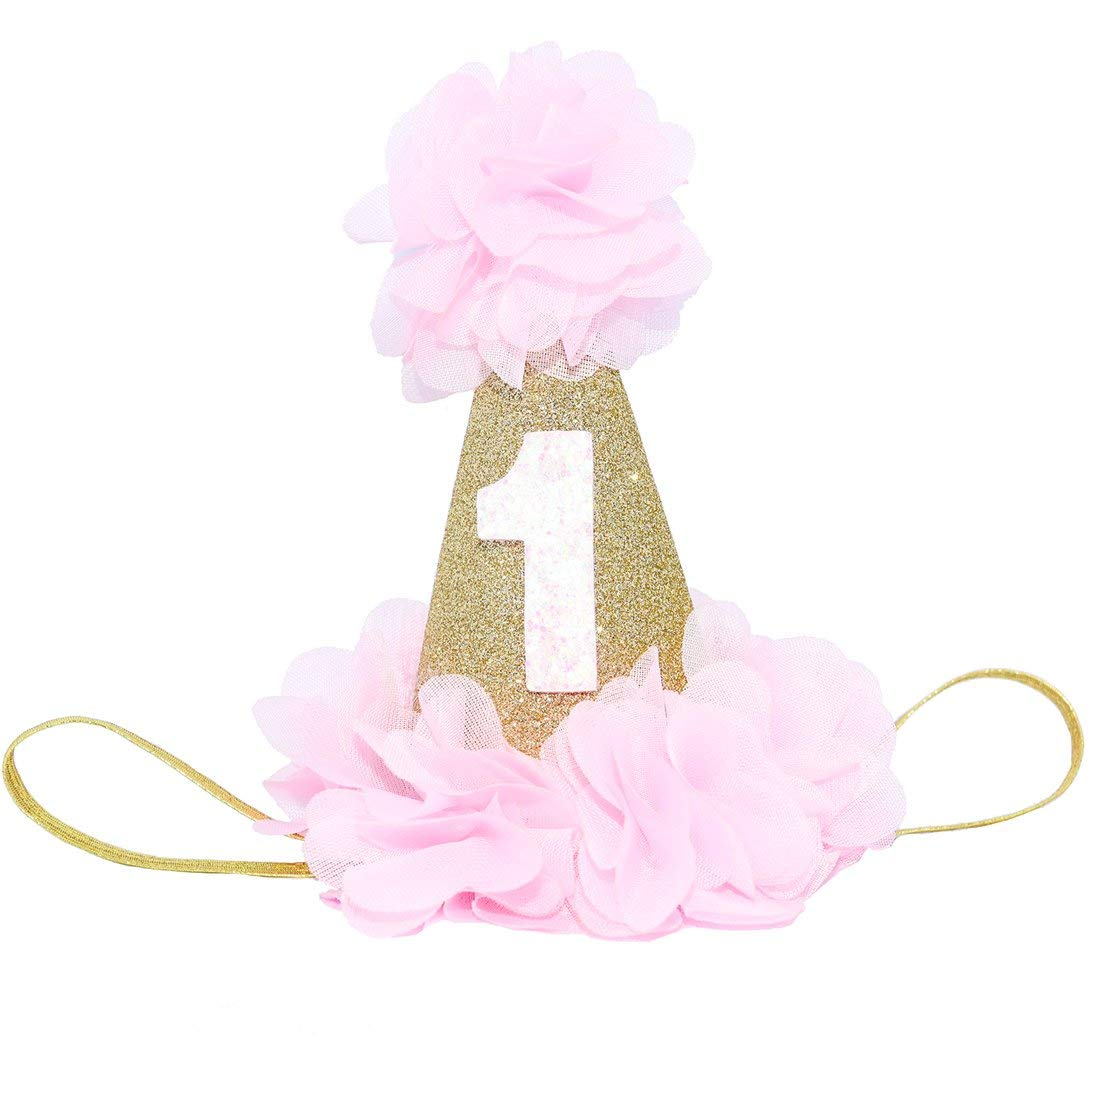 Get Quotations Maticr Sparkly Baby First Birthday Cone Hat With Blush Chiffon Embellished Flowers For Cake Smash